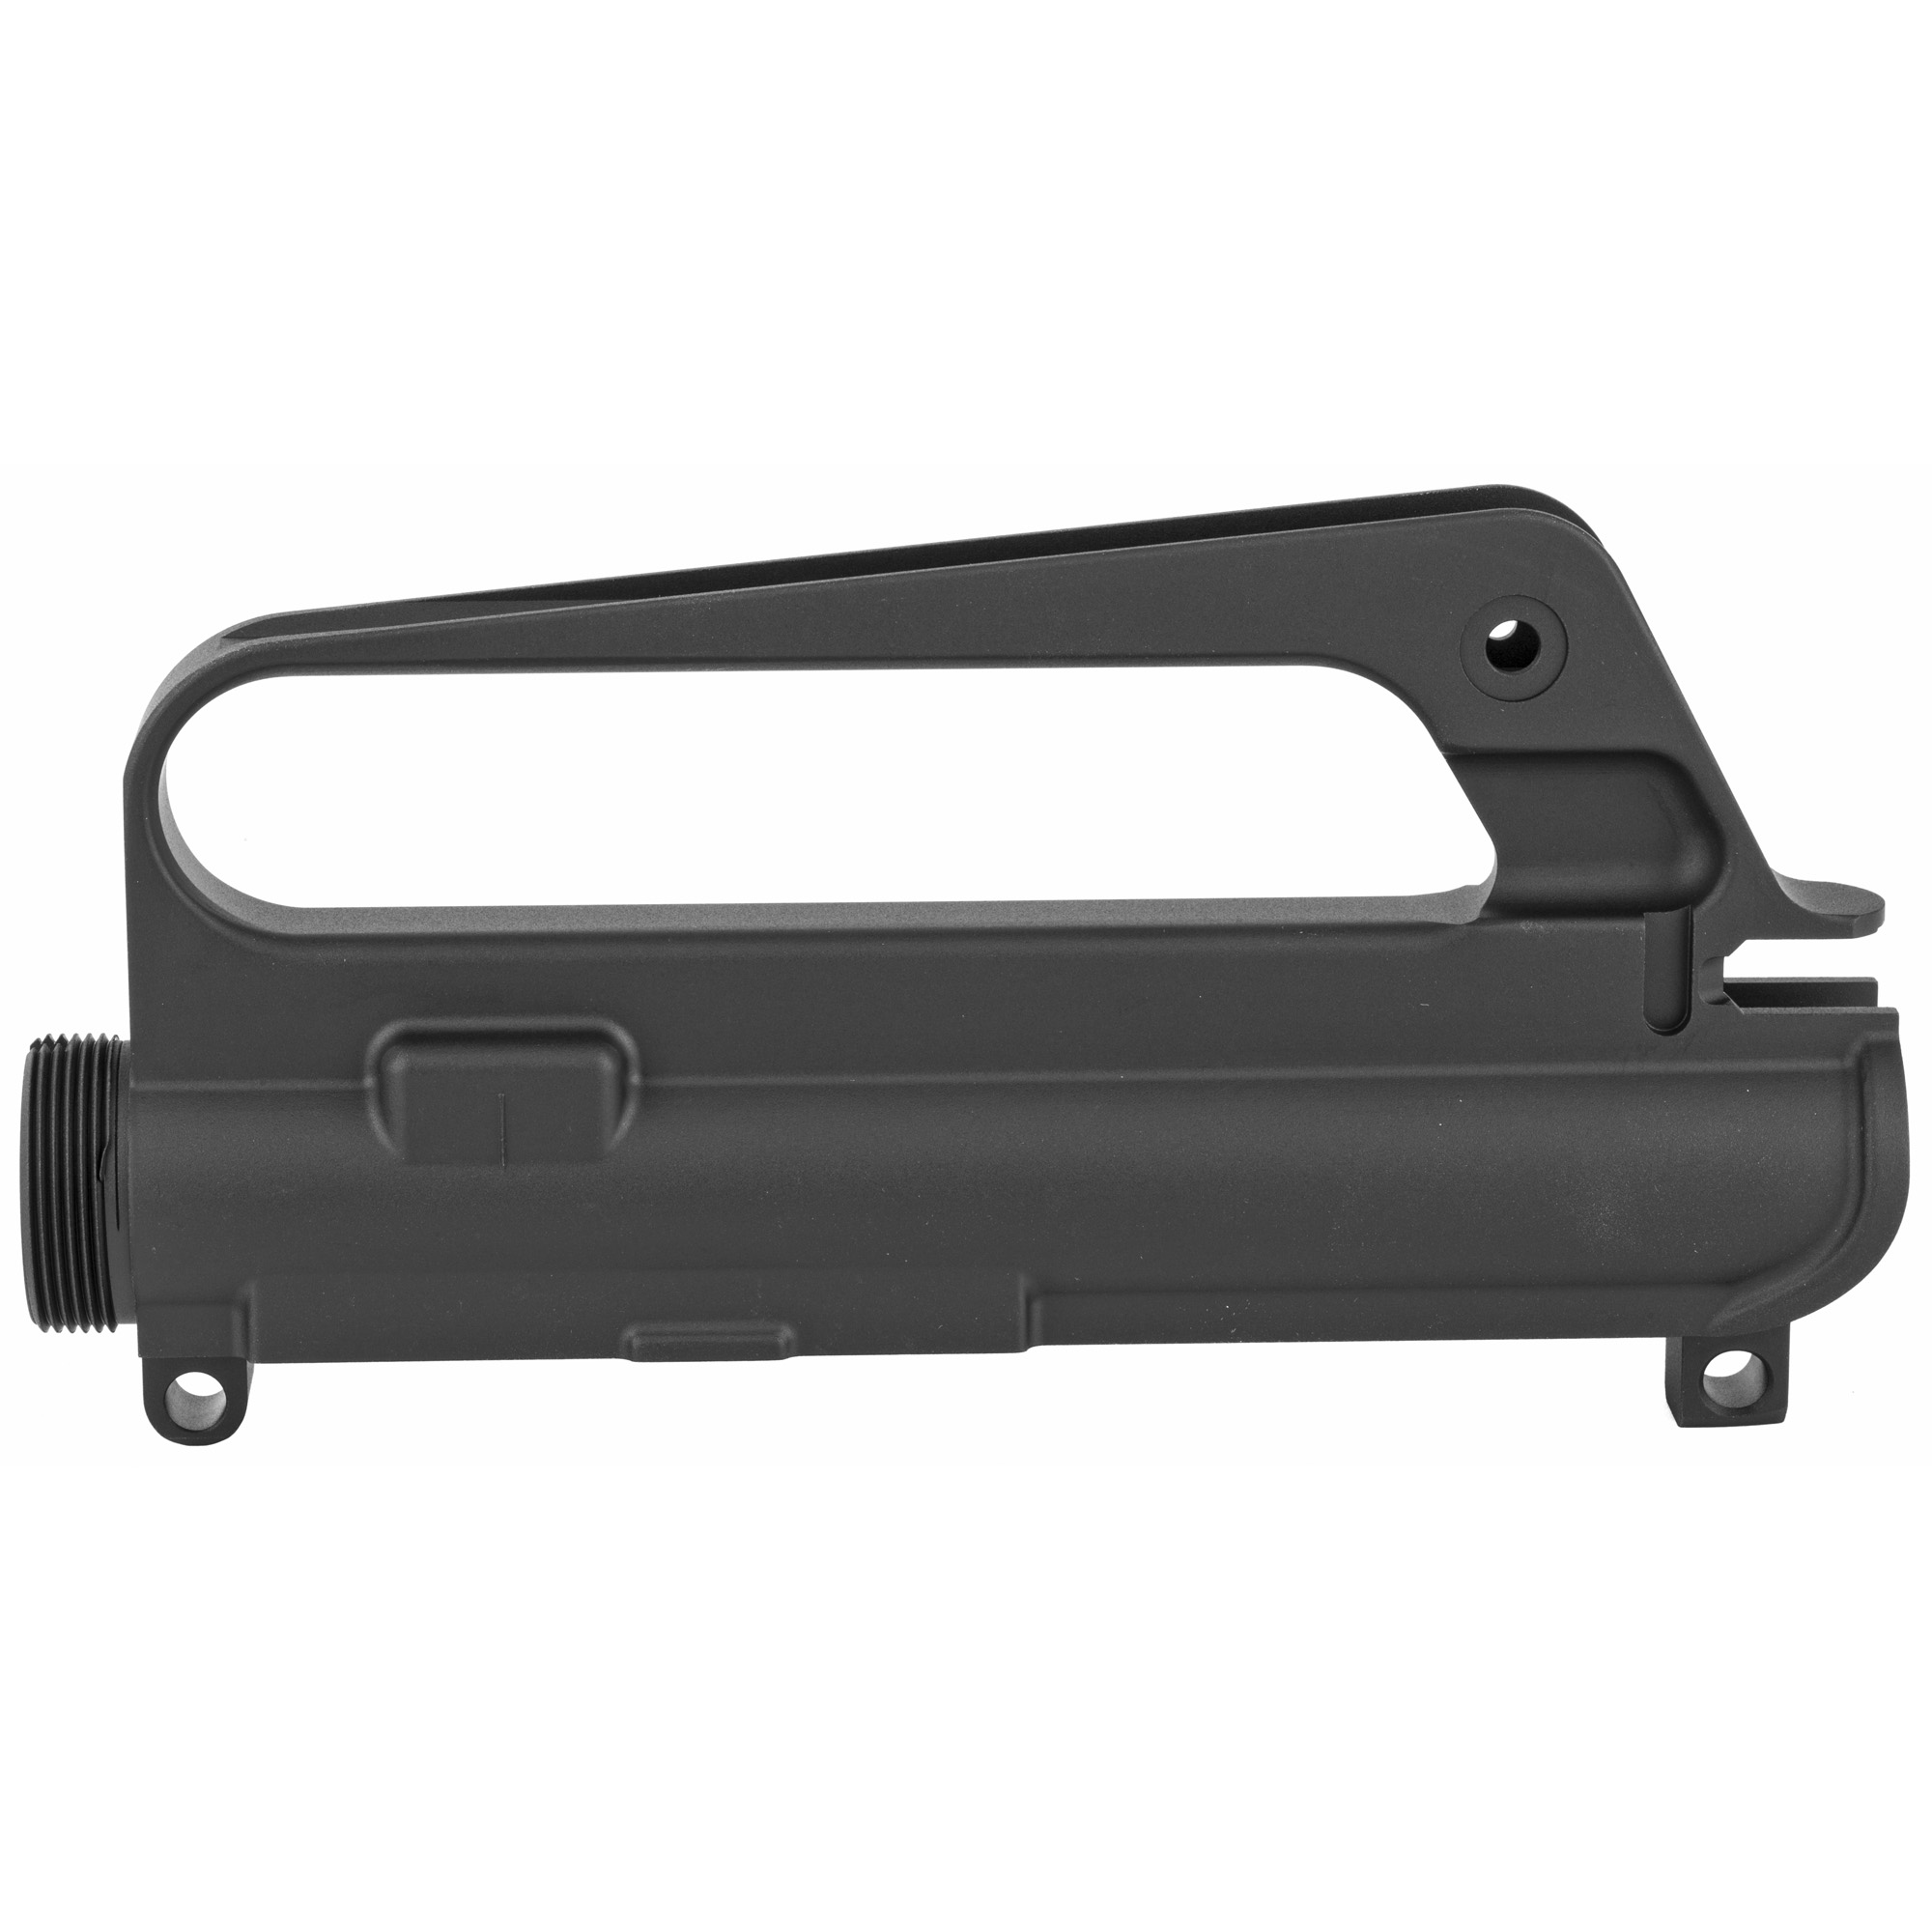 Luth Ar A1 Stripped Upper Blk